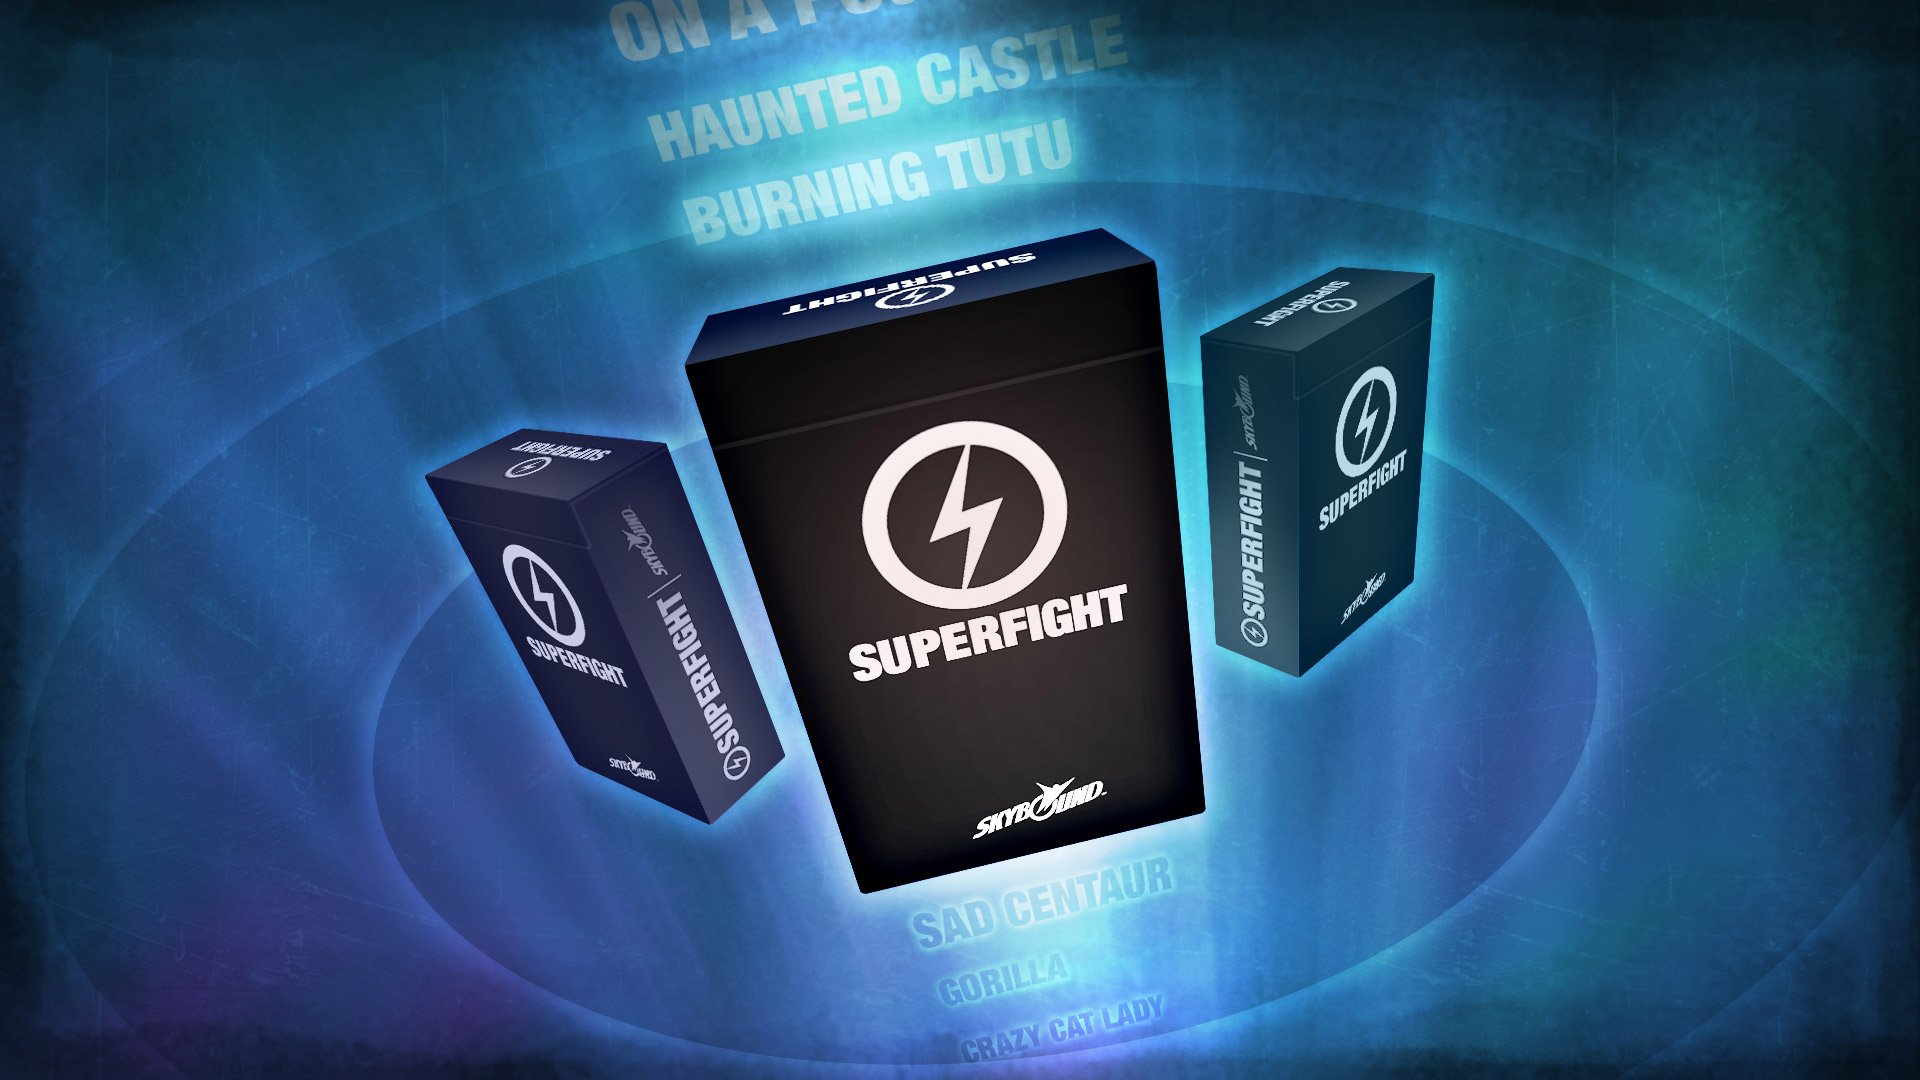 superfight card game promotional image